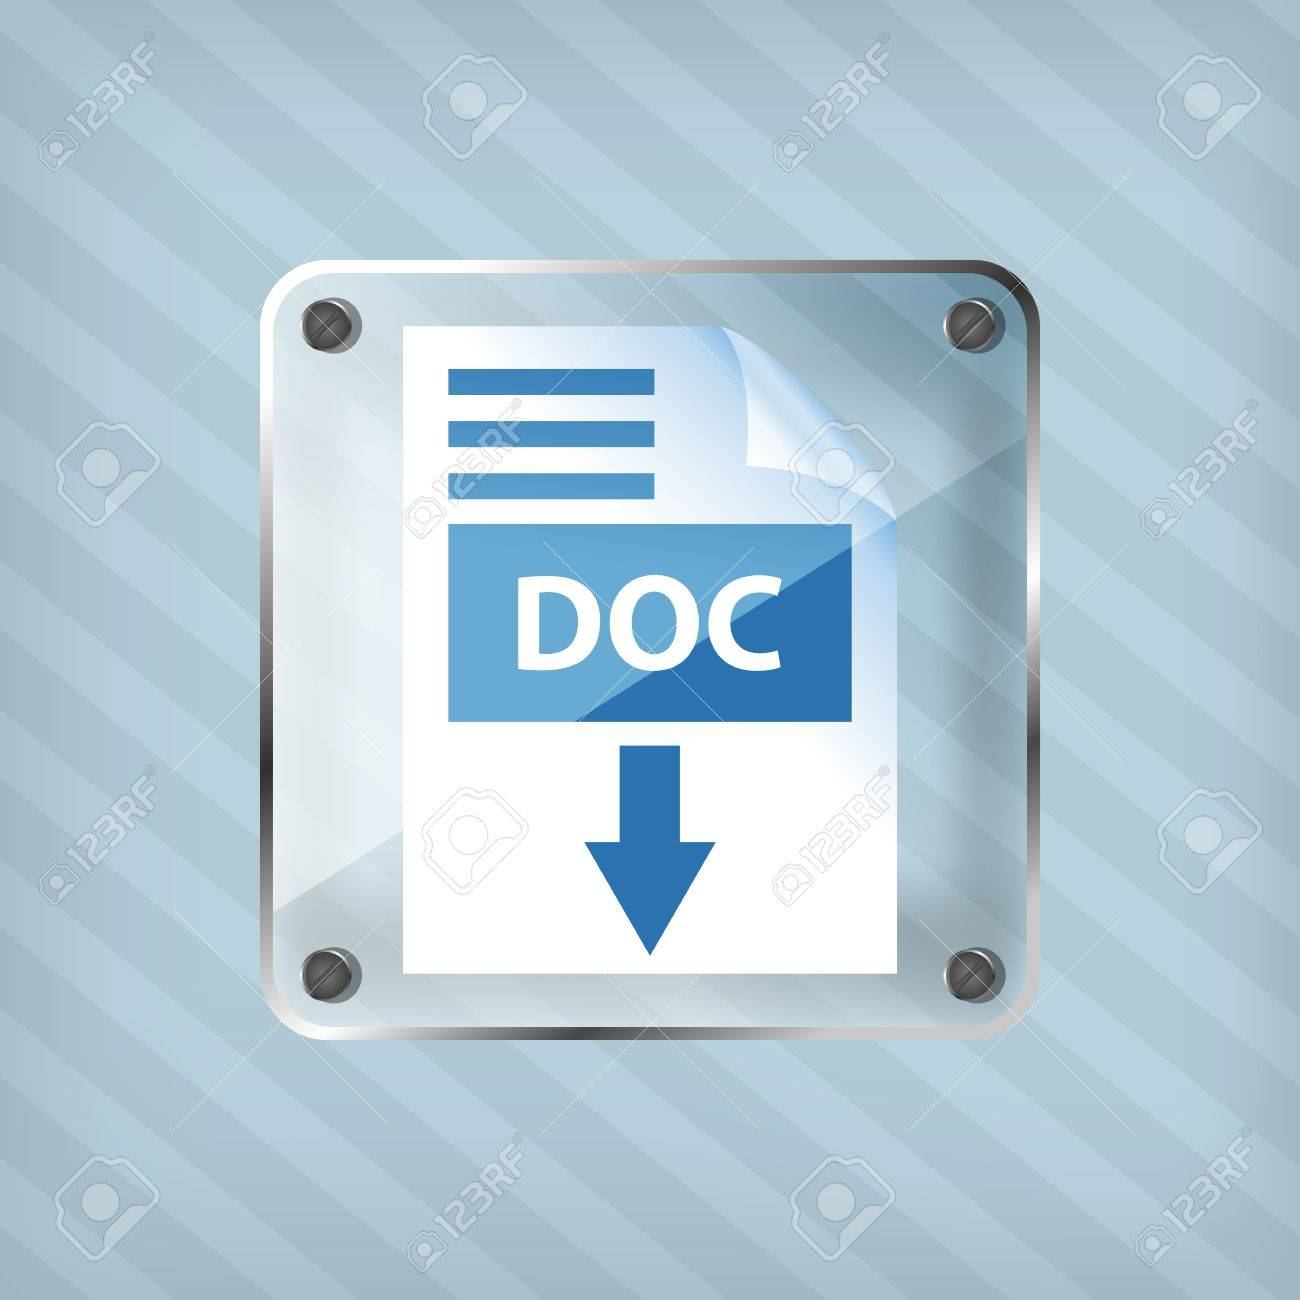 transparency doc download icon on a striped background Stock Vector - 18861785